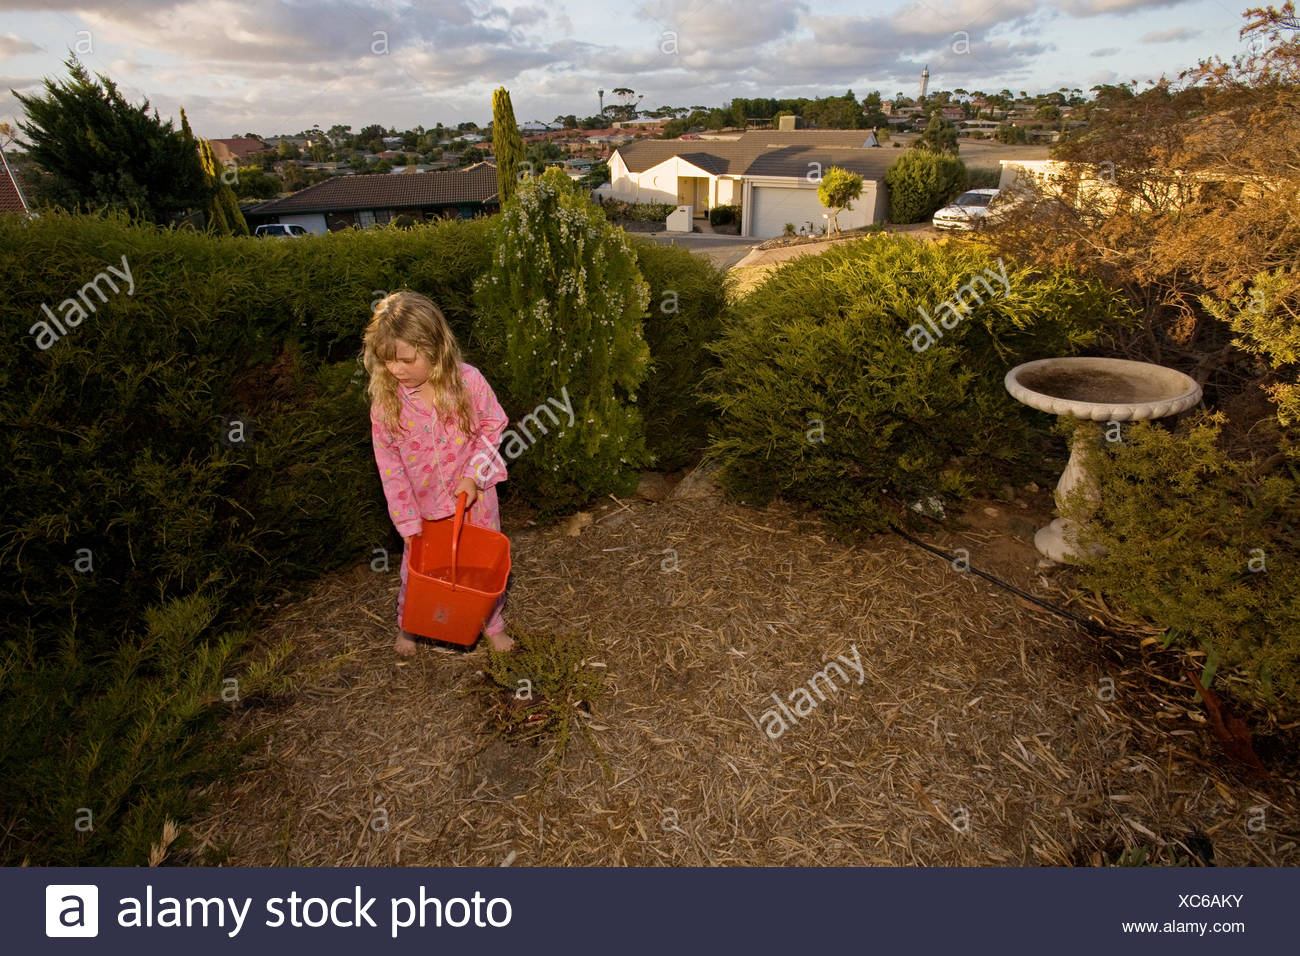 To conserve water during a drought, a girl re-uses bath water for the garden. - Stock Image